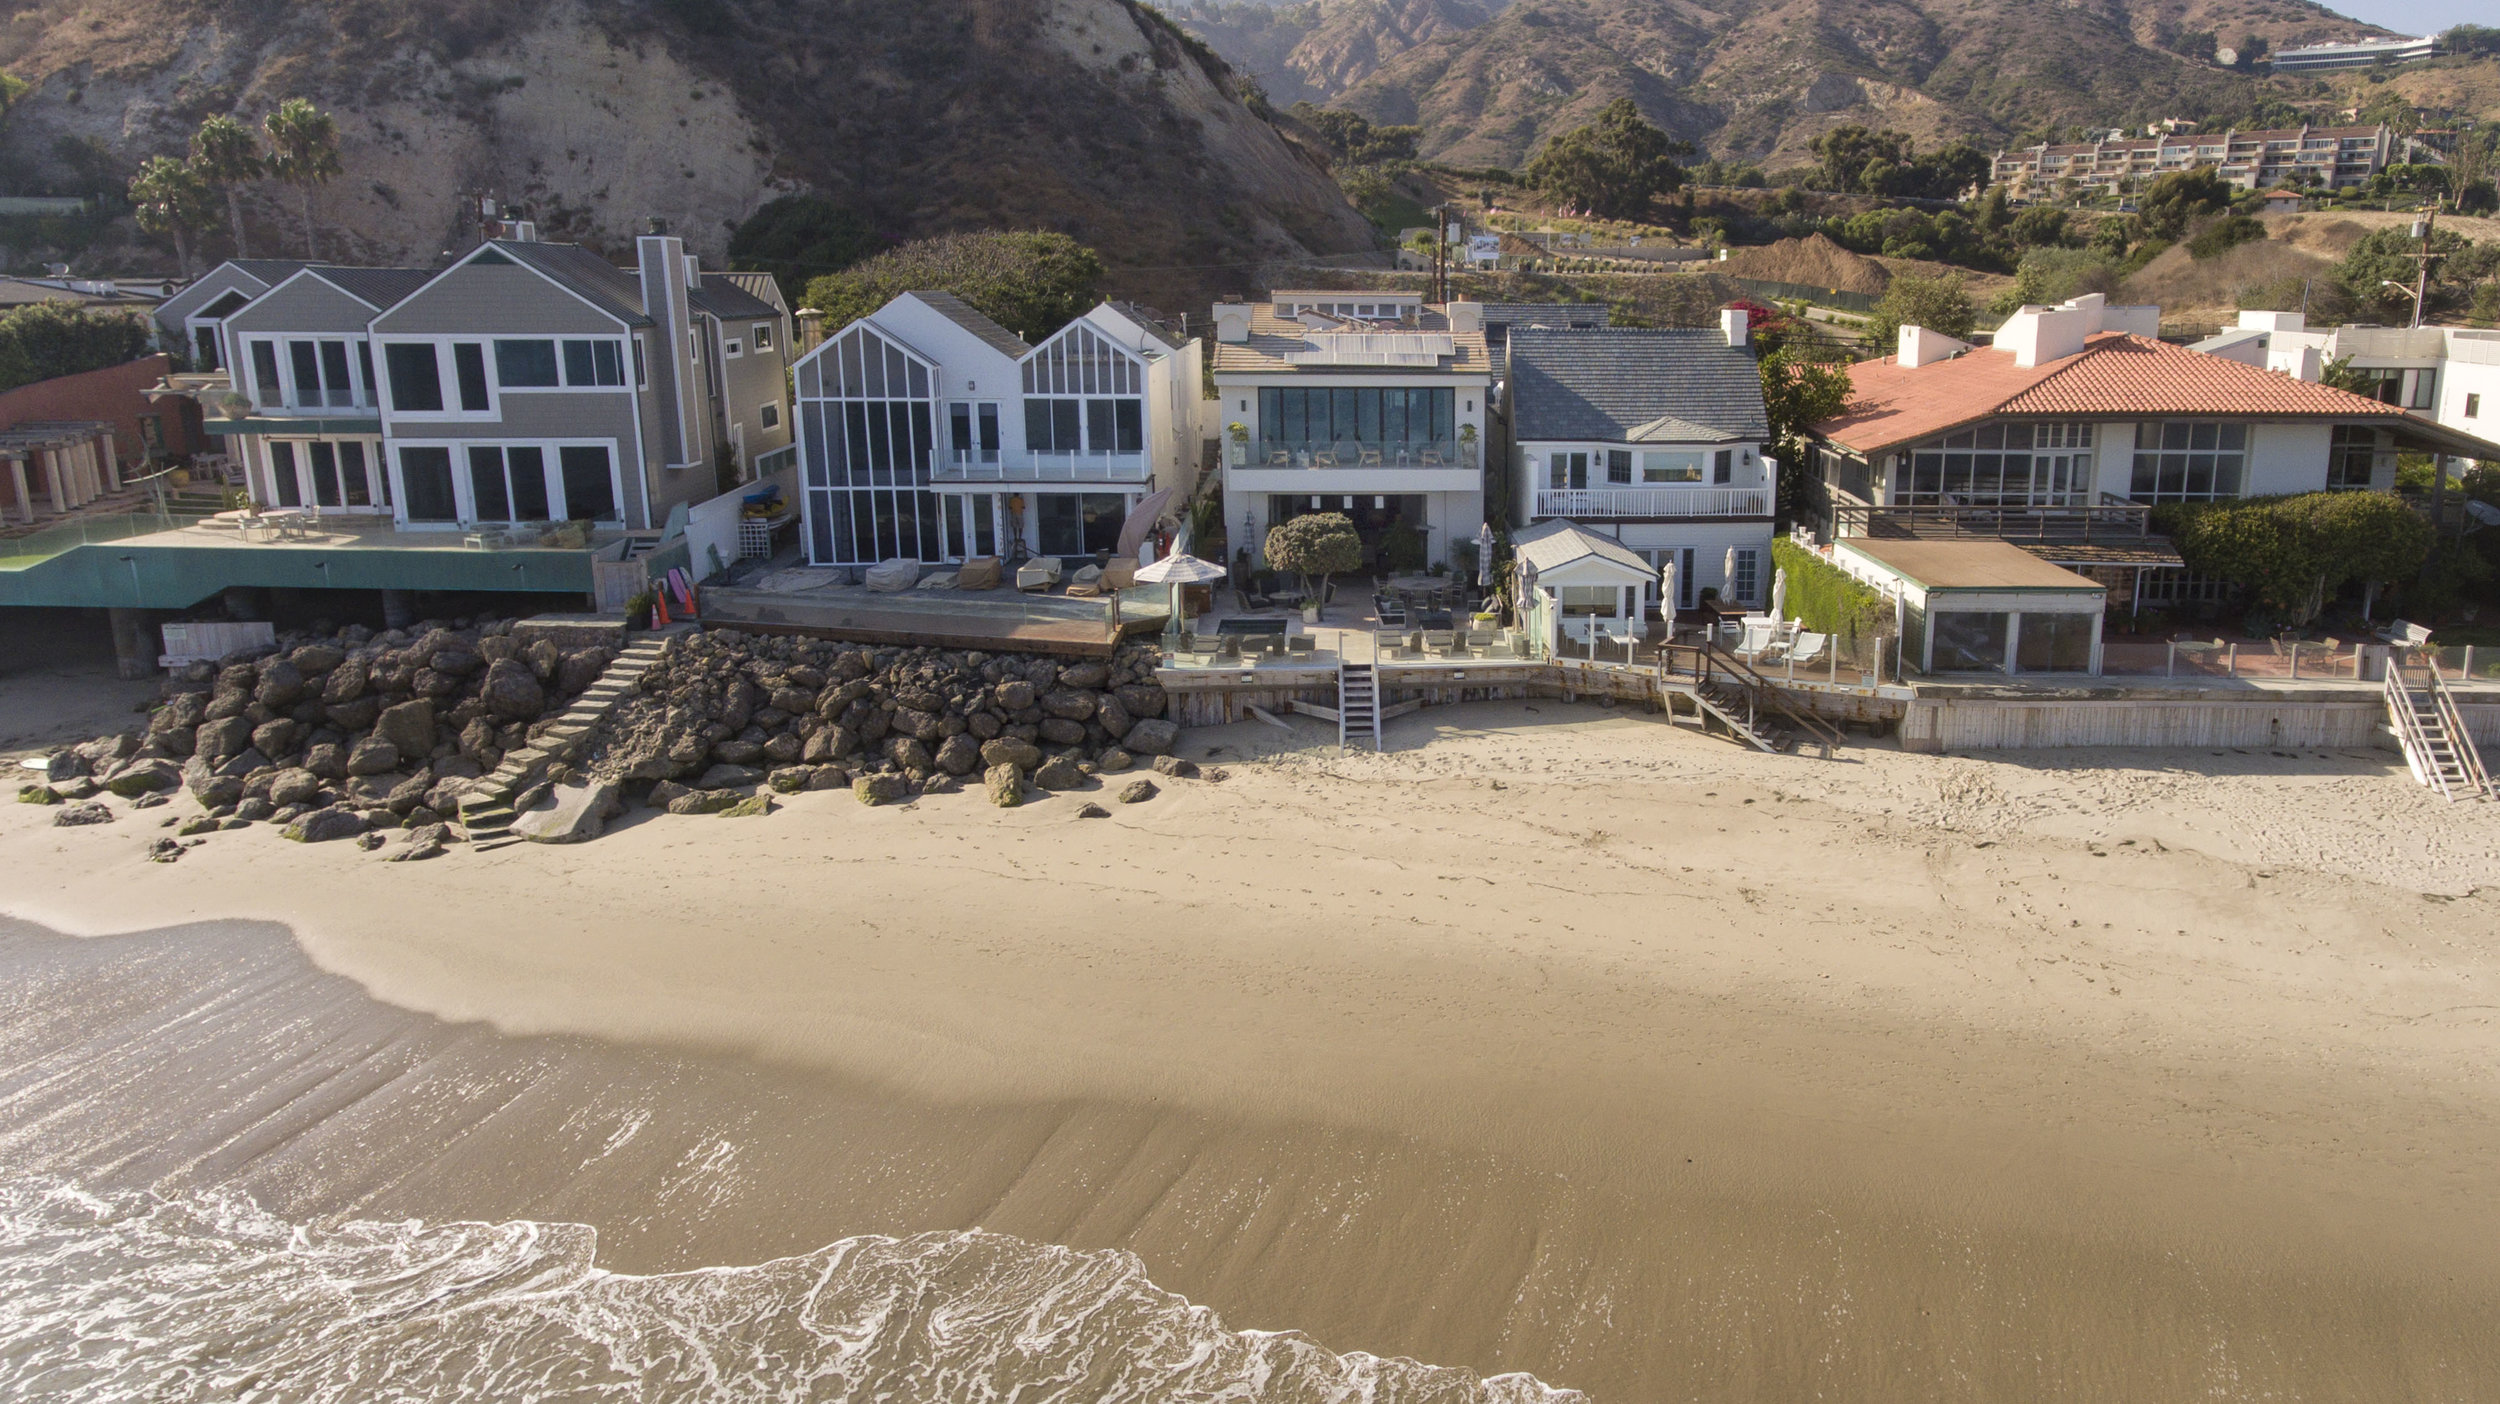 007 Aerial 23930 Malibu Road For Sale Lease The Malibu Life Team Luxury Real Estate.jpg